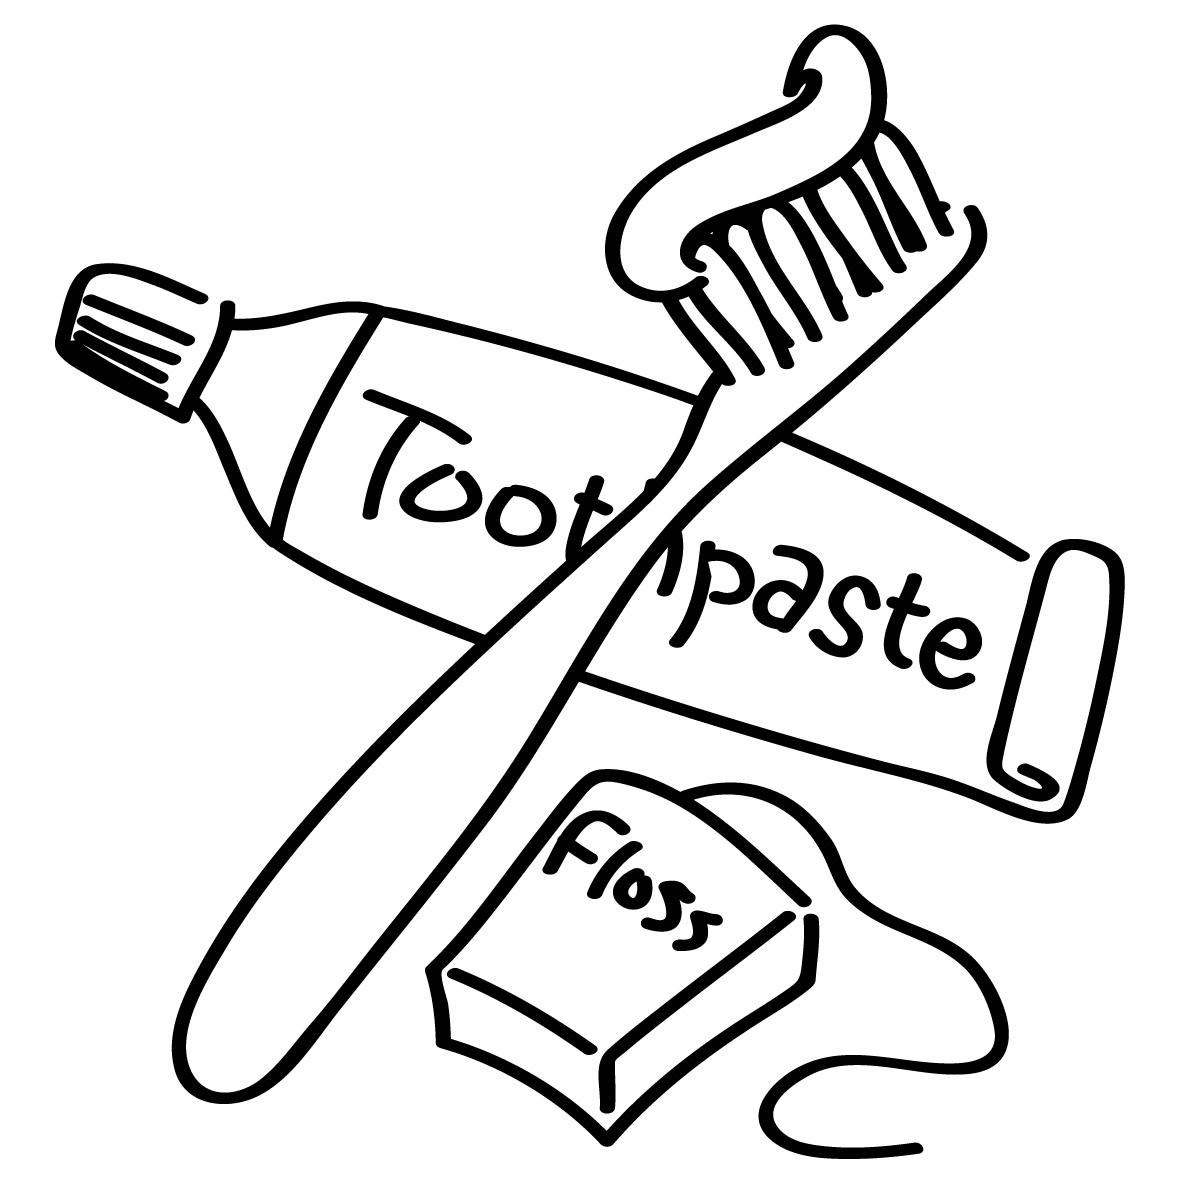 Toothbrush dentist toothpaste clipart kid.